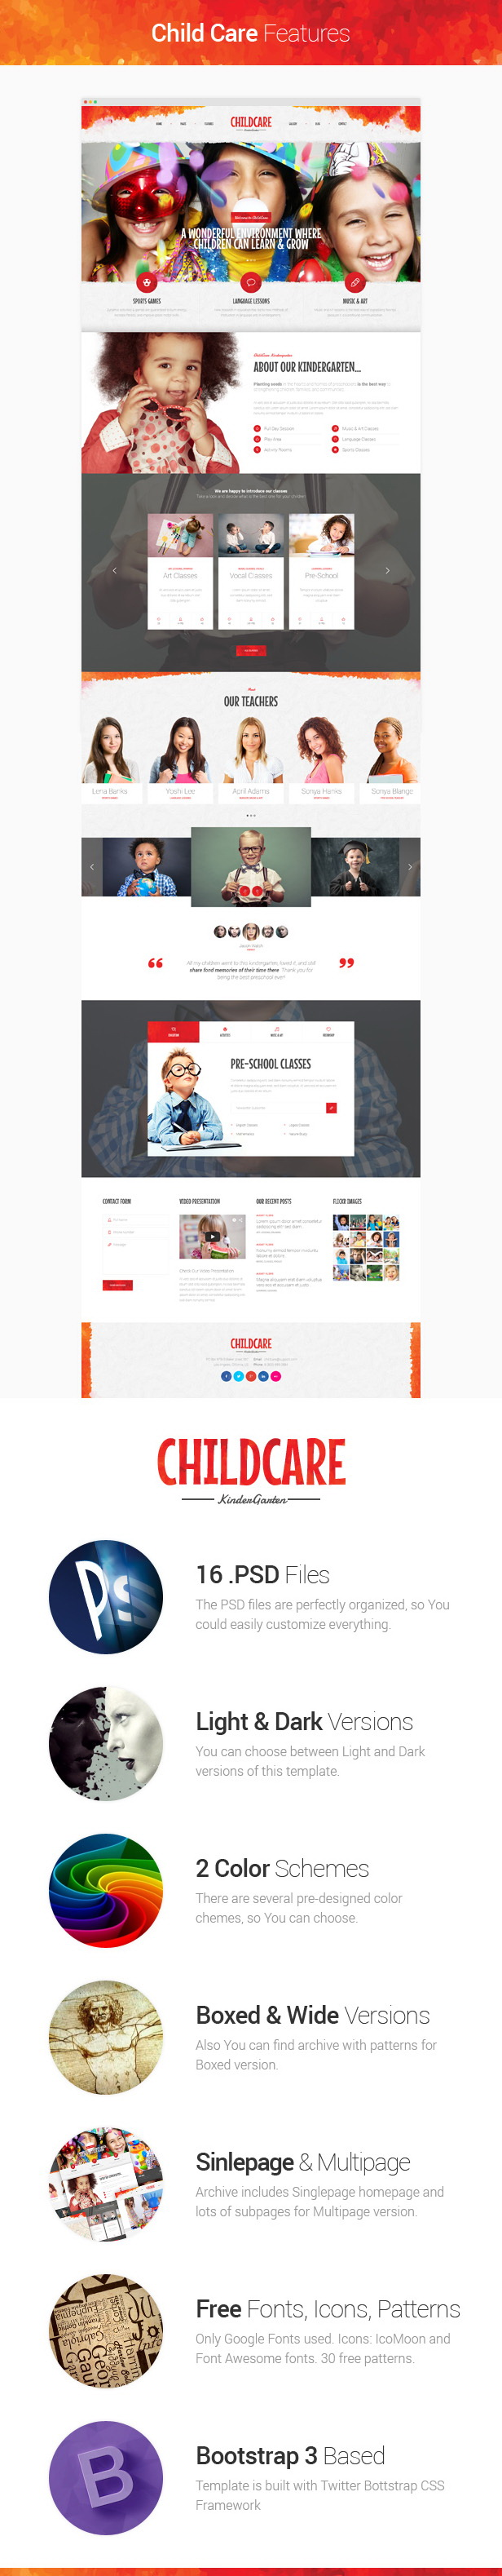 Child Care - Children & Kindergarten Template description  Download Child Care – Children & Kindergarten WP Theme nulled childcare psd description